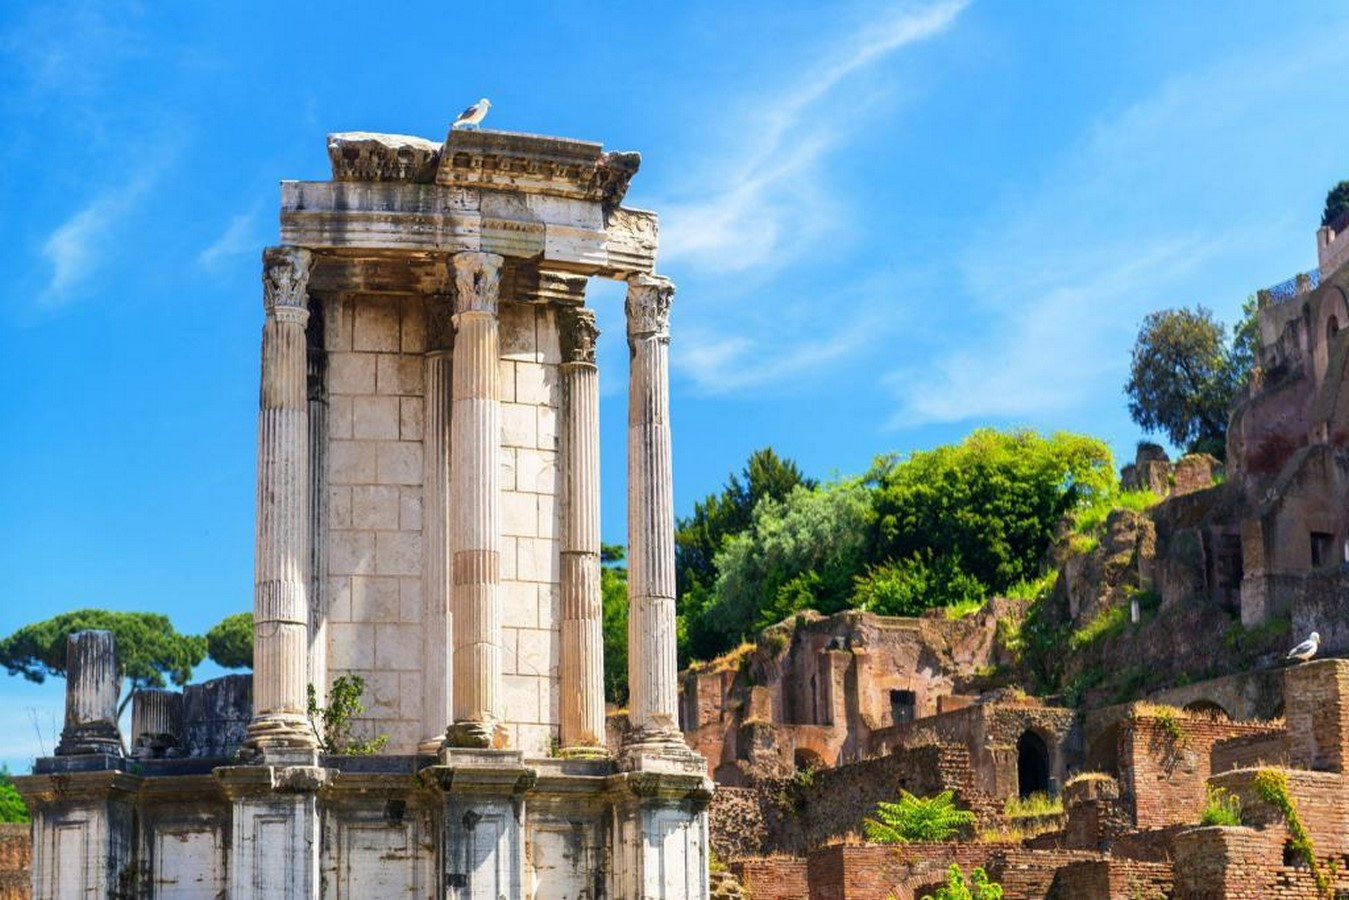 The Roman Forum, Rome: Heritage stuck in time - Sheet6